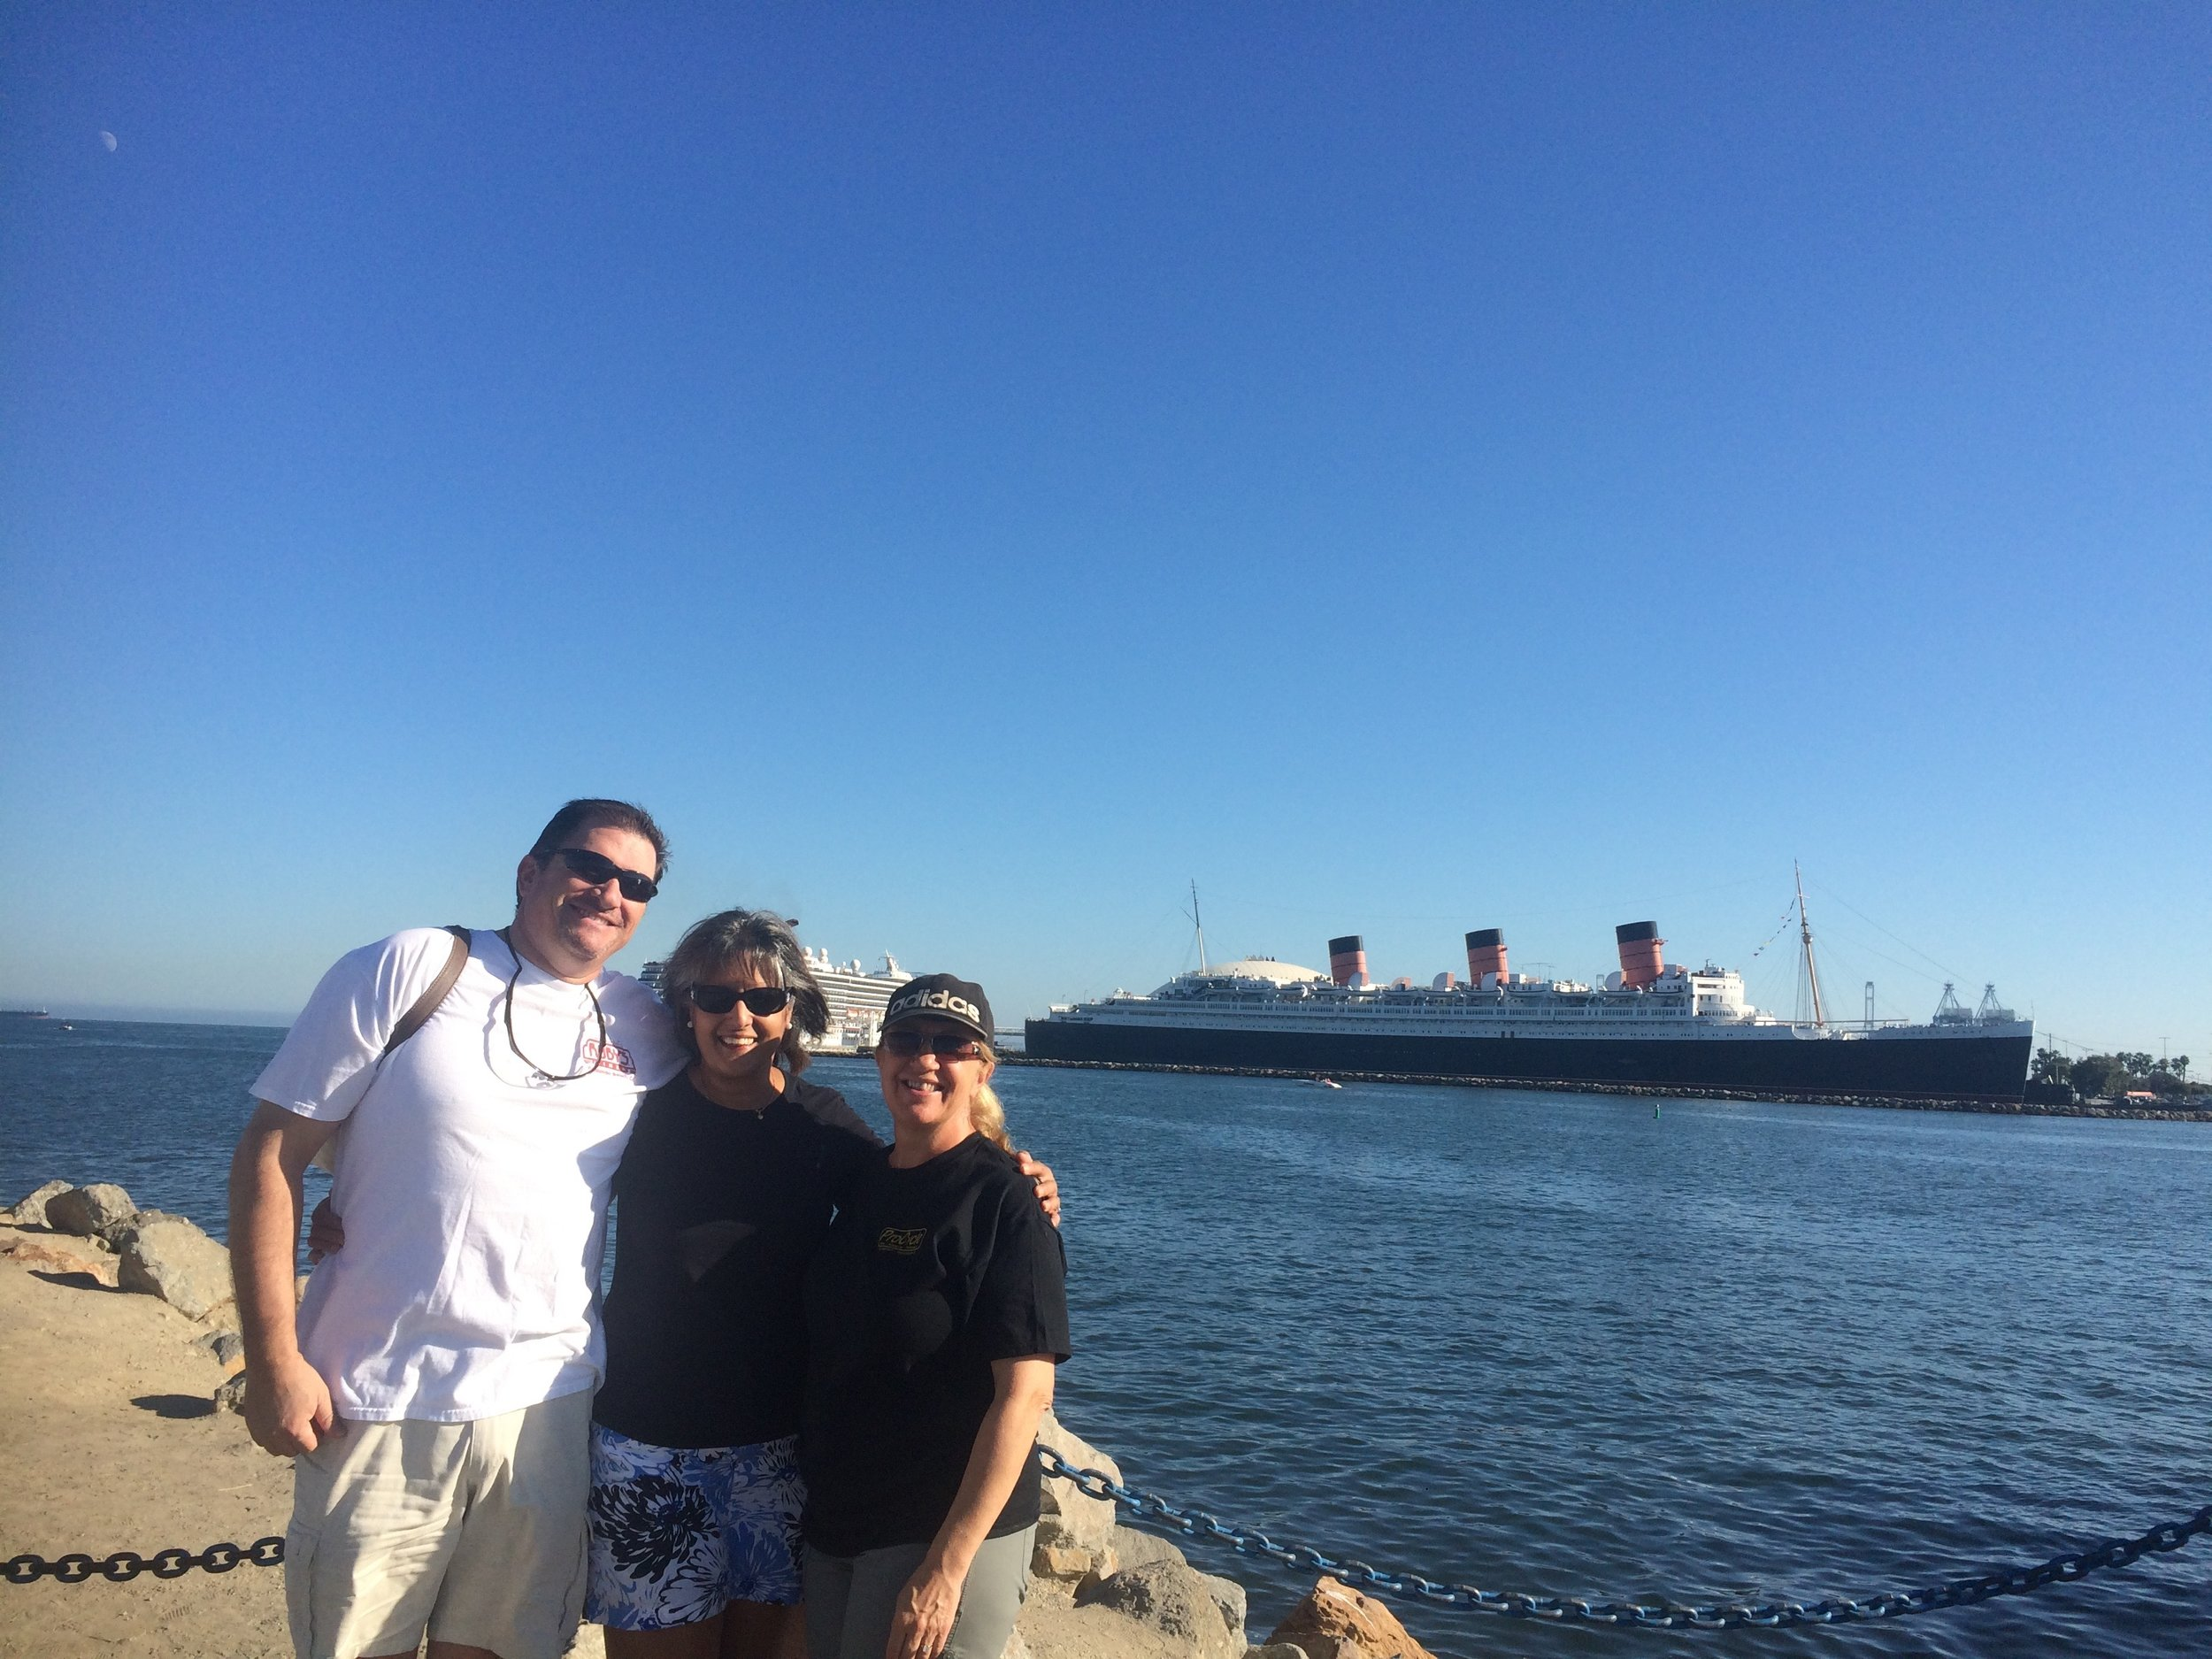 Sukhpal and Martin at Long Beach. Queen Mary in background.